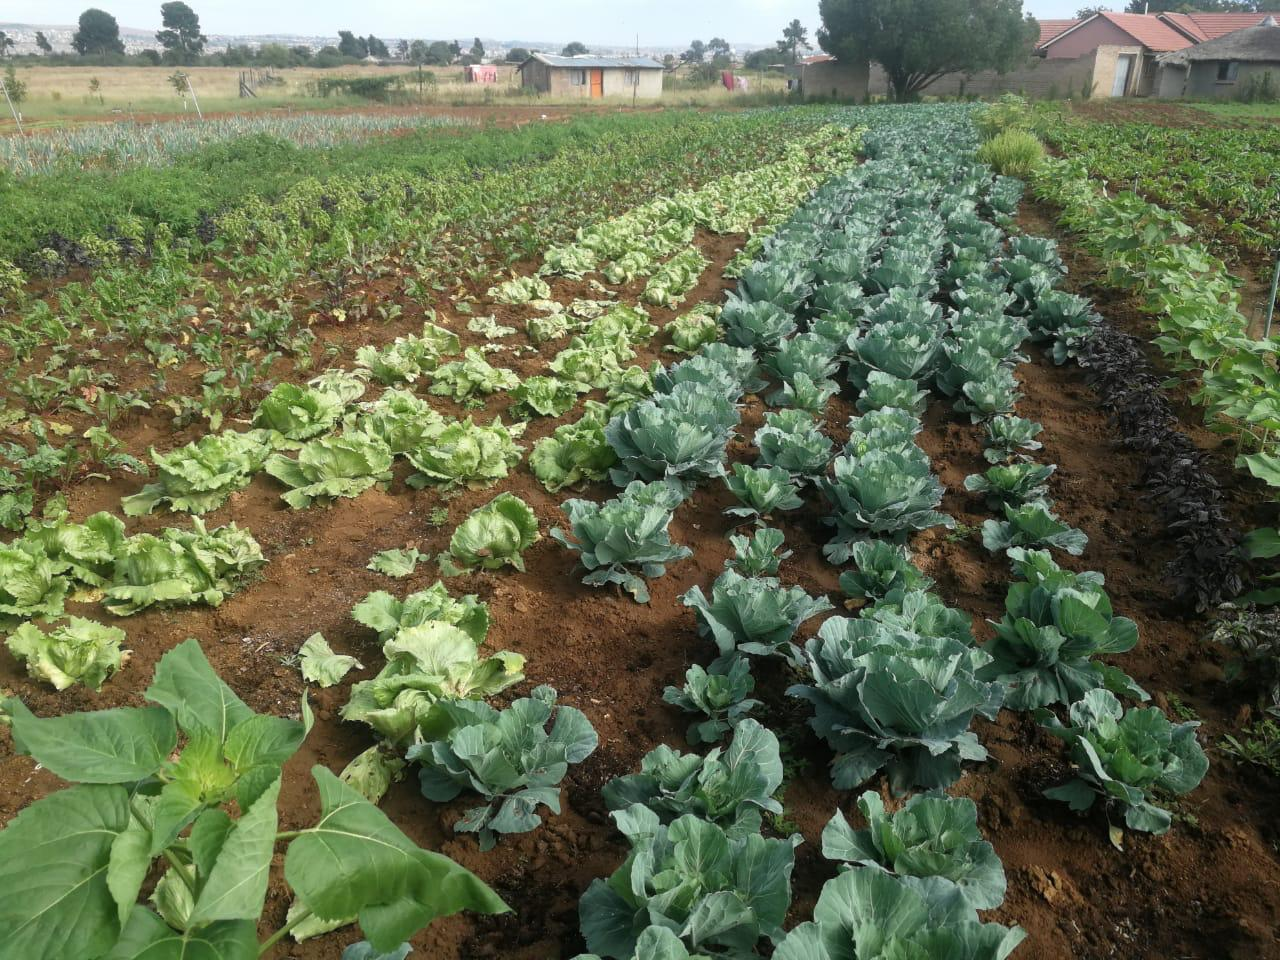 Vegetable gardens in Mutale Thohoyandou